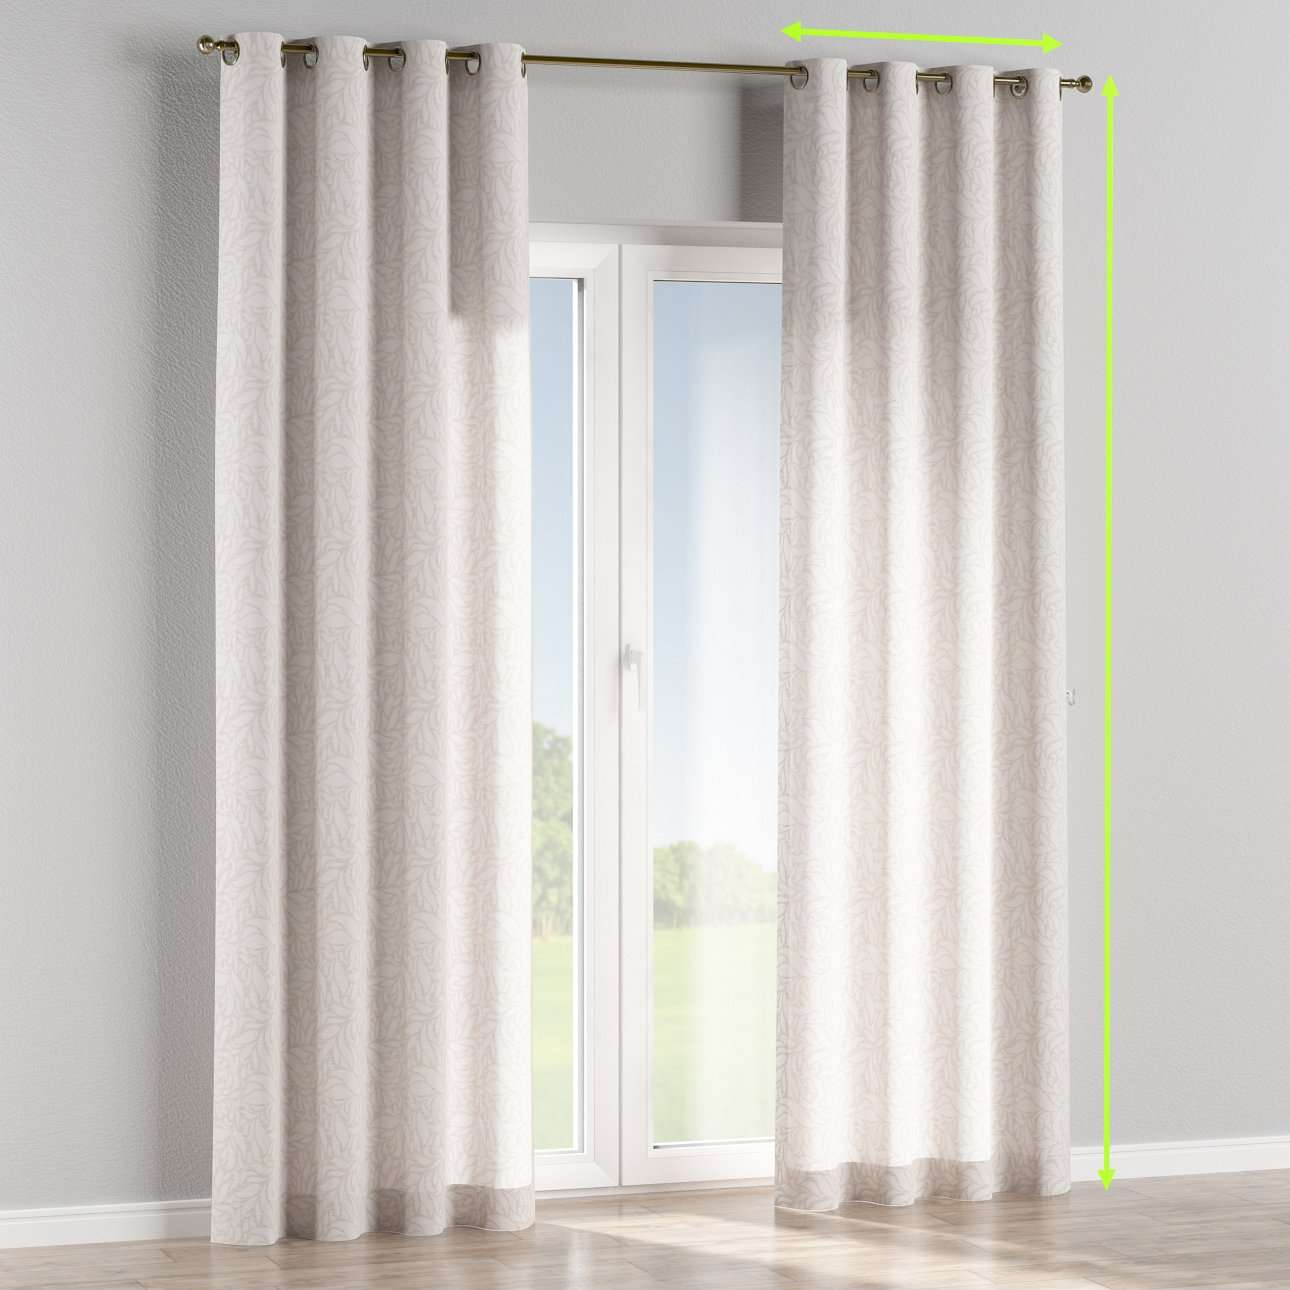 Eyelet curtain in collection Venice, fabric: 140-50